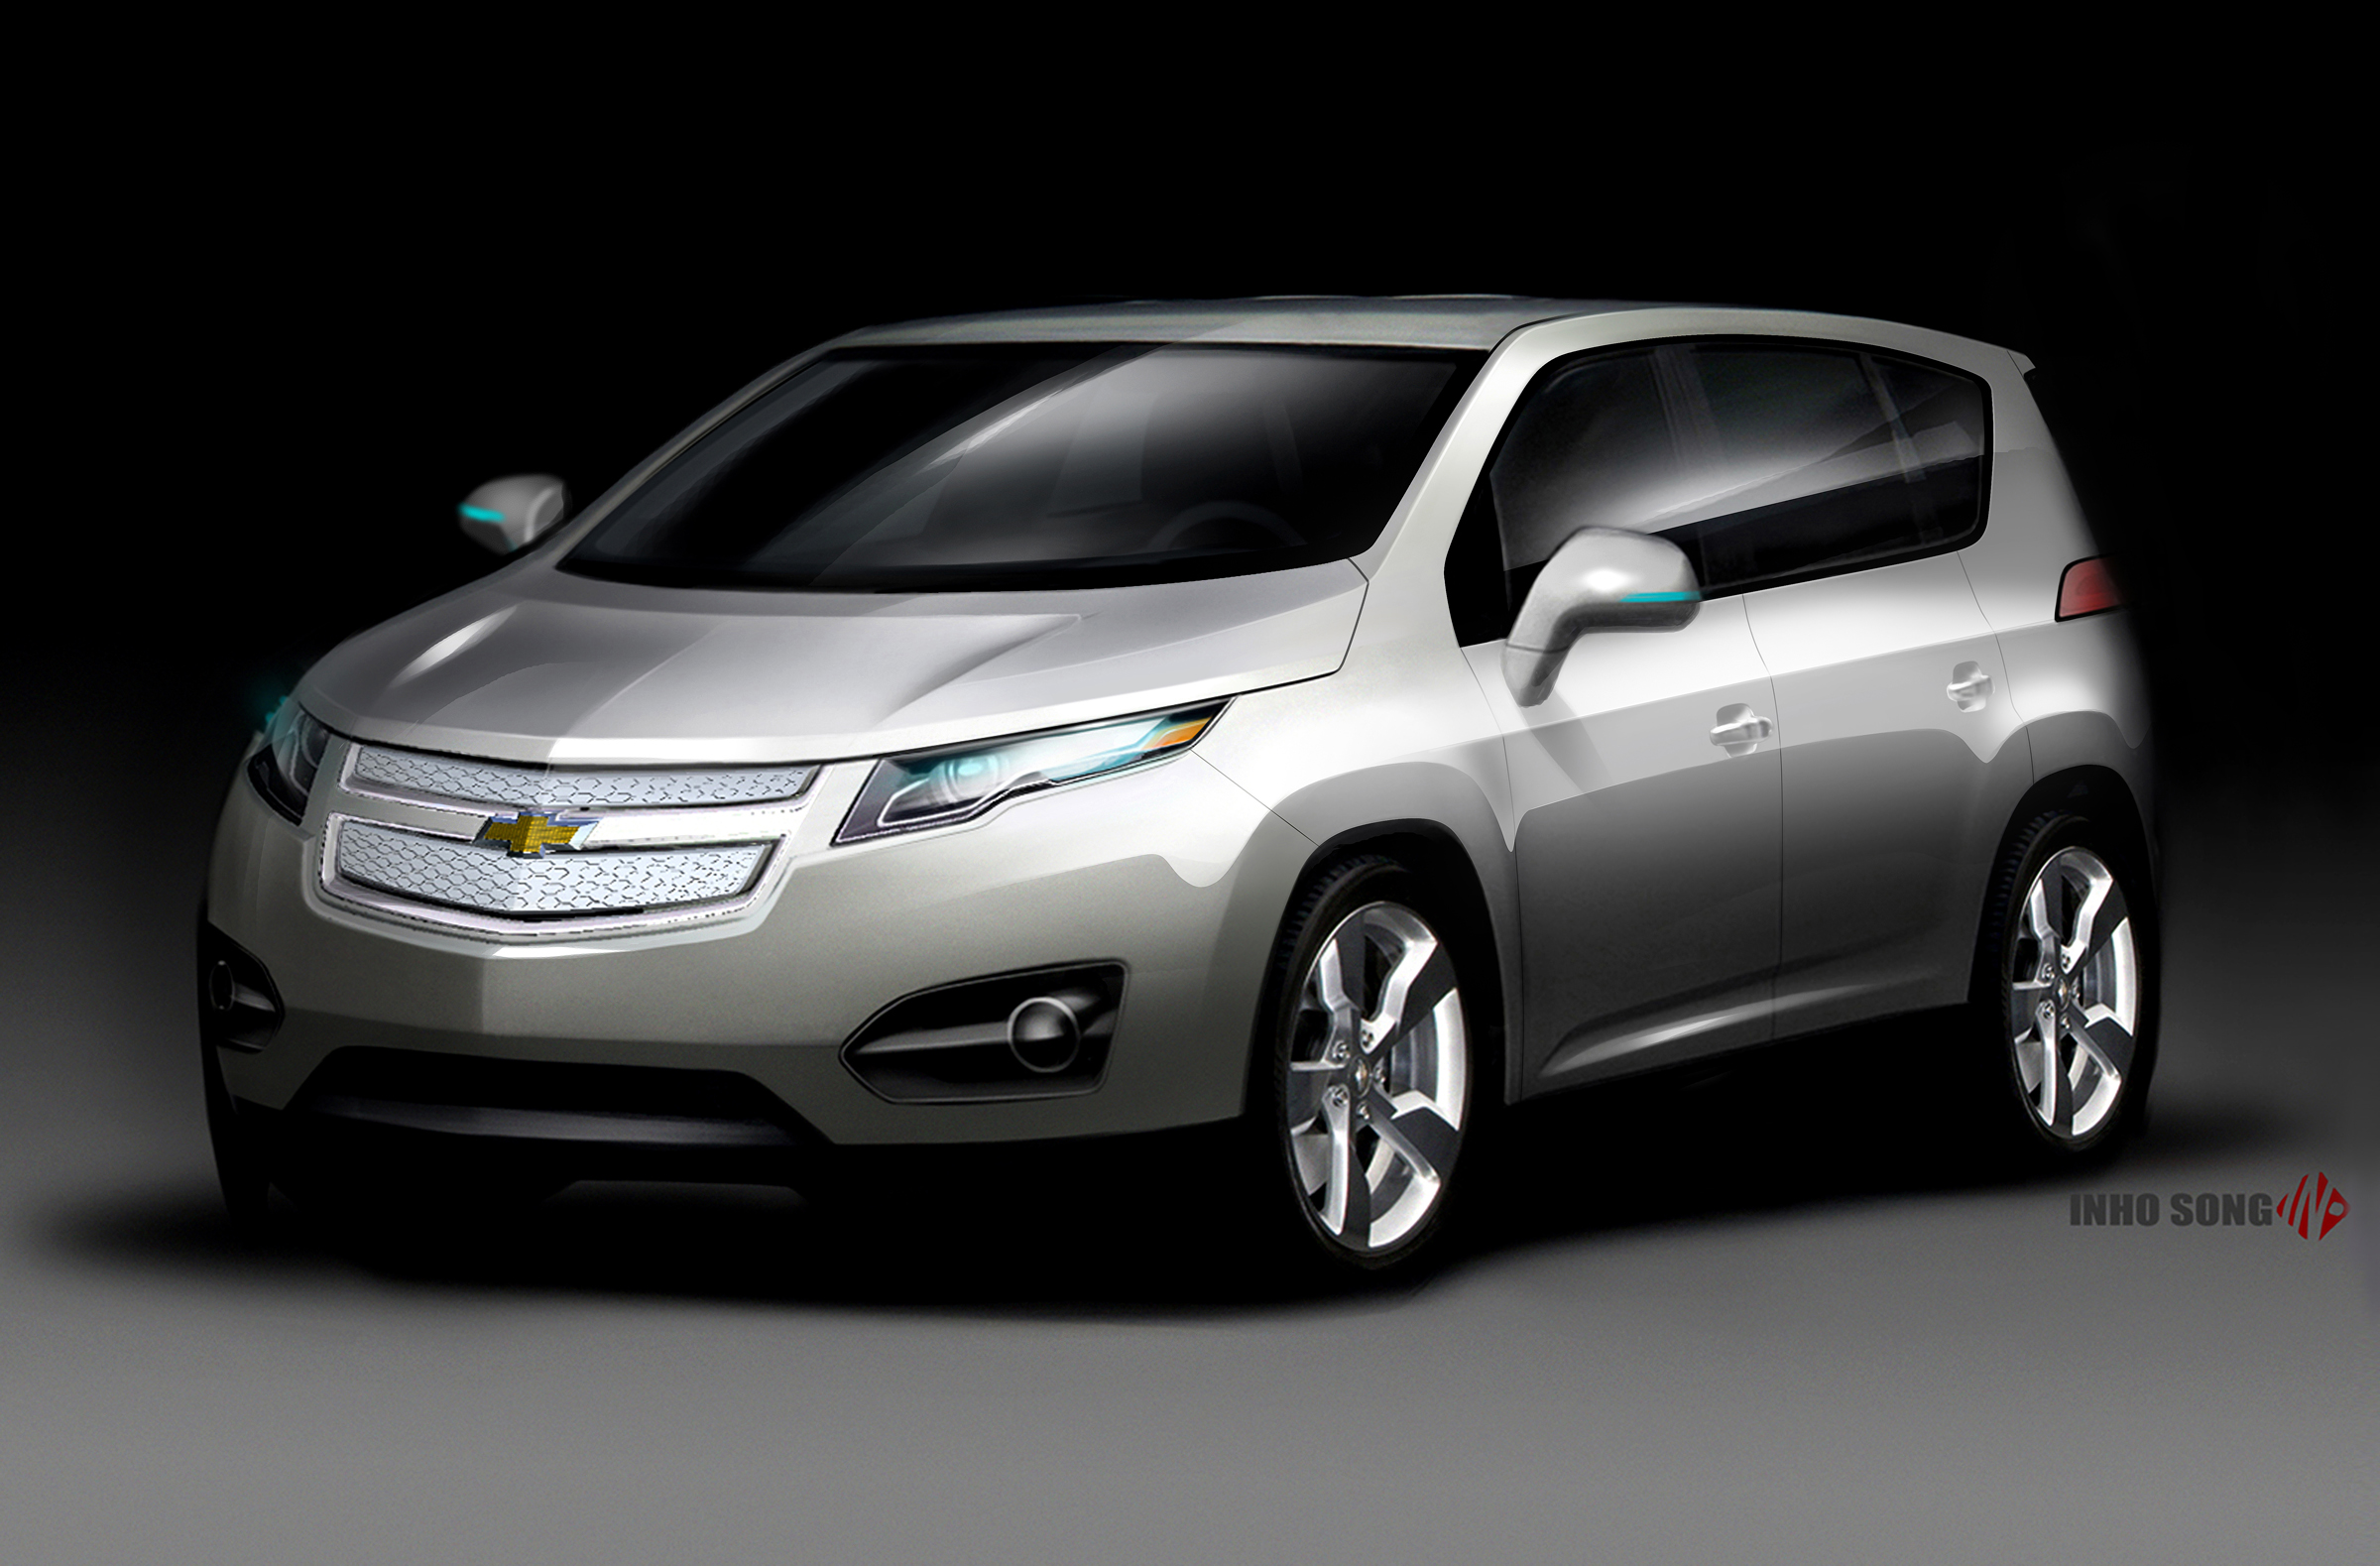 U.S. automakers are rebounding with more growth predicted - GM-VOLT ...